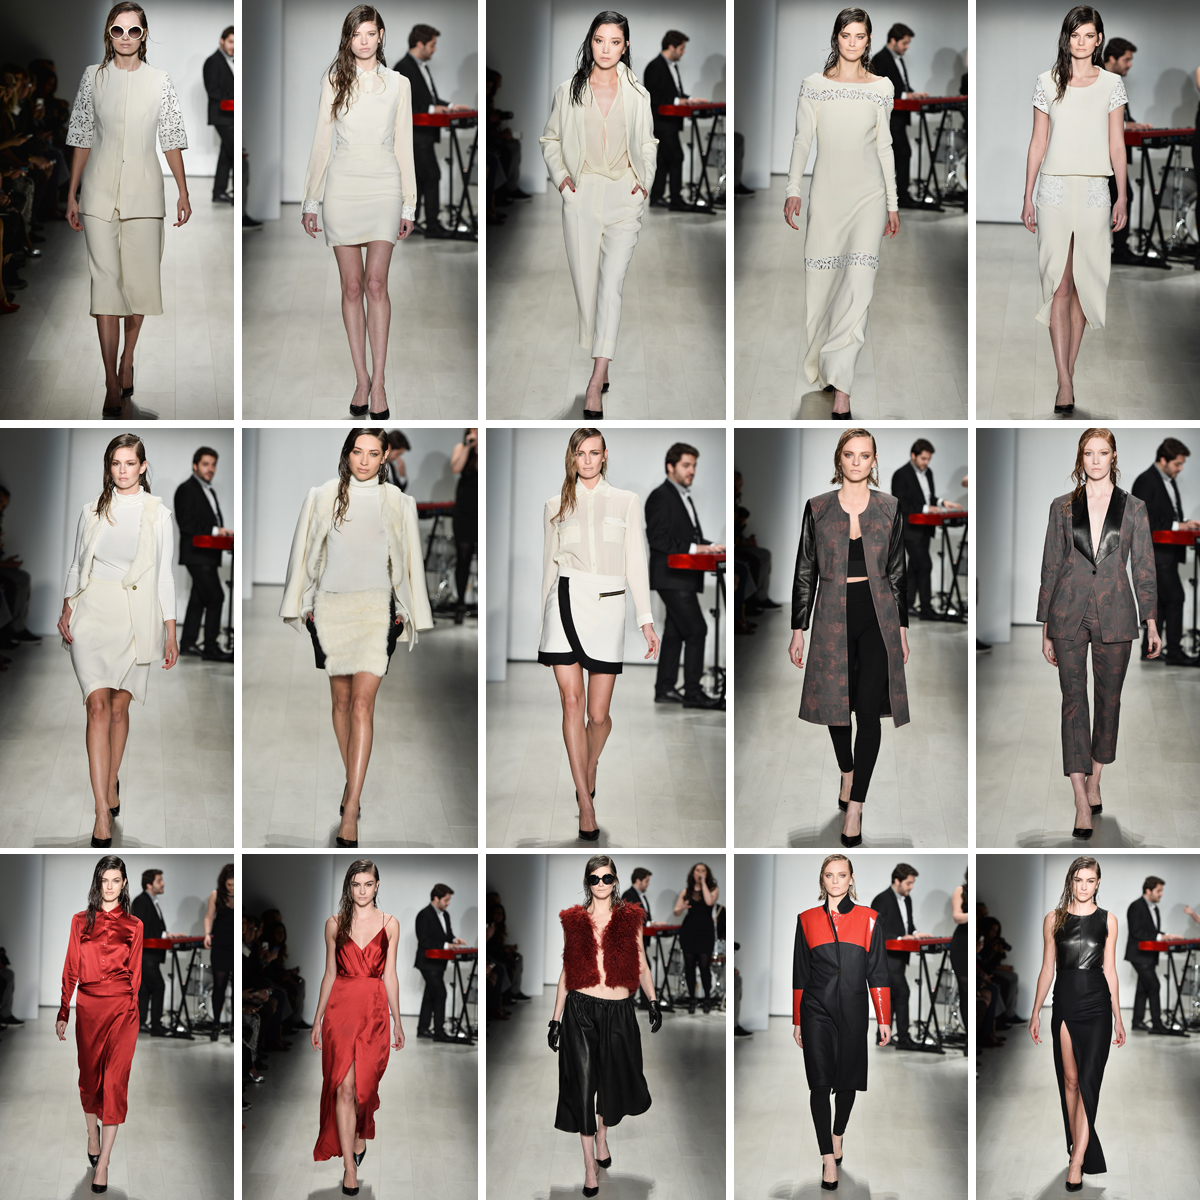 hilary macmillan fall winter 2015 world mastercard fashion week toronto fashion week 01